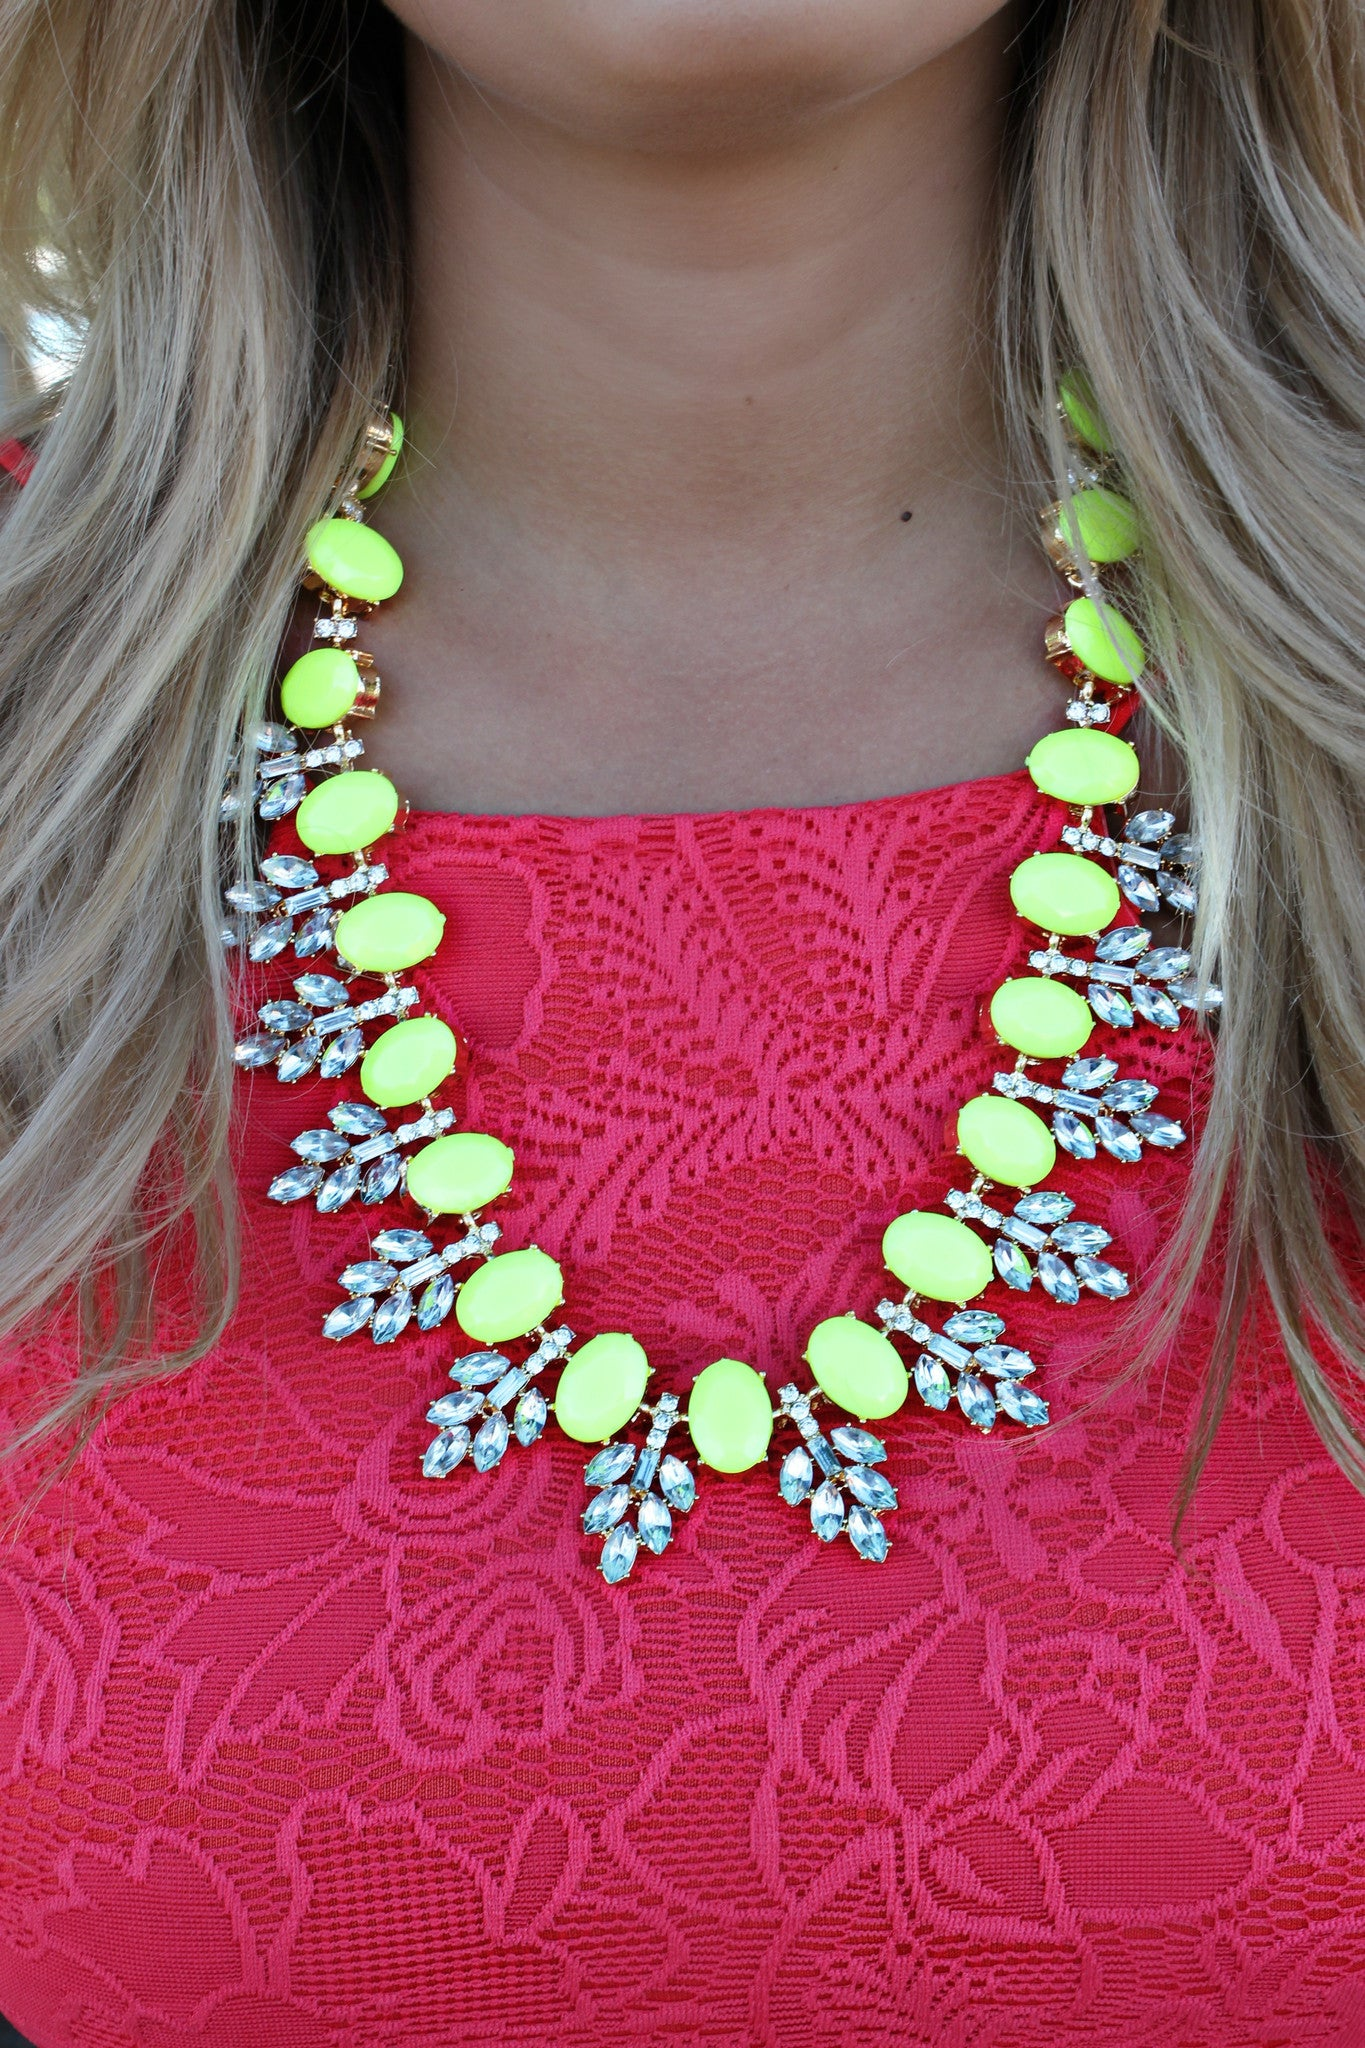 She's Got It Necklace in Neon - Leah B. Boutique